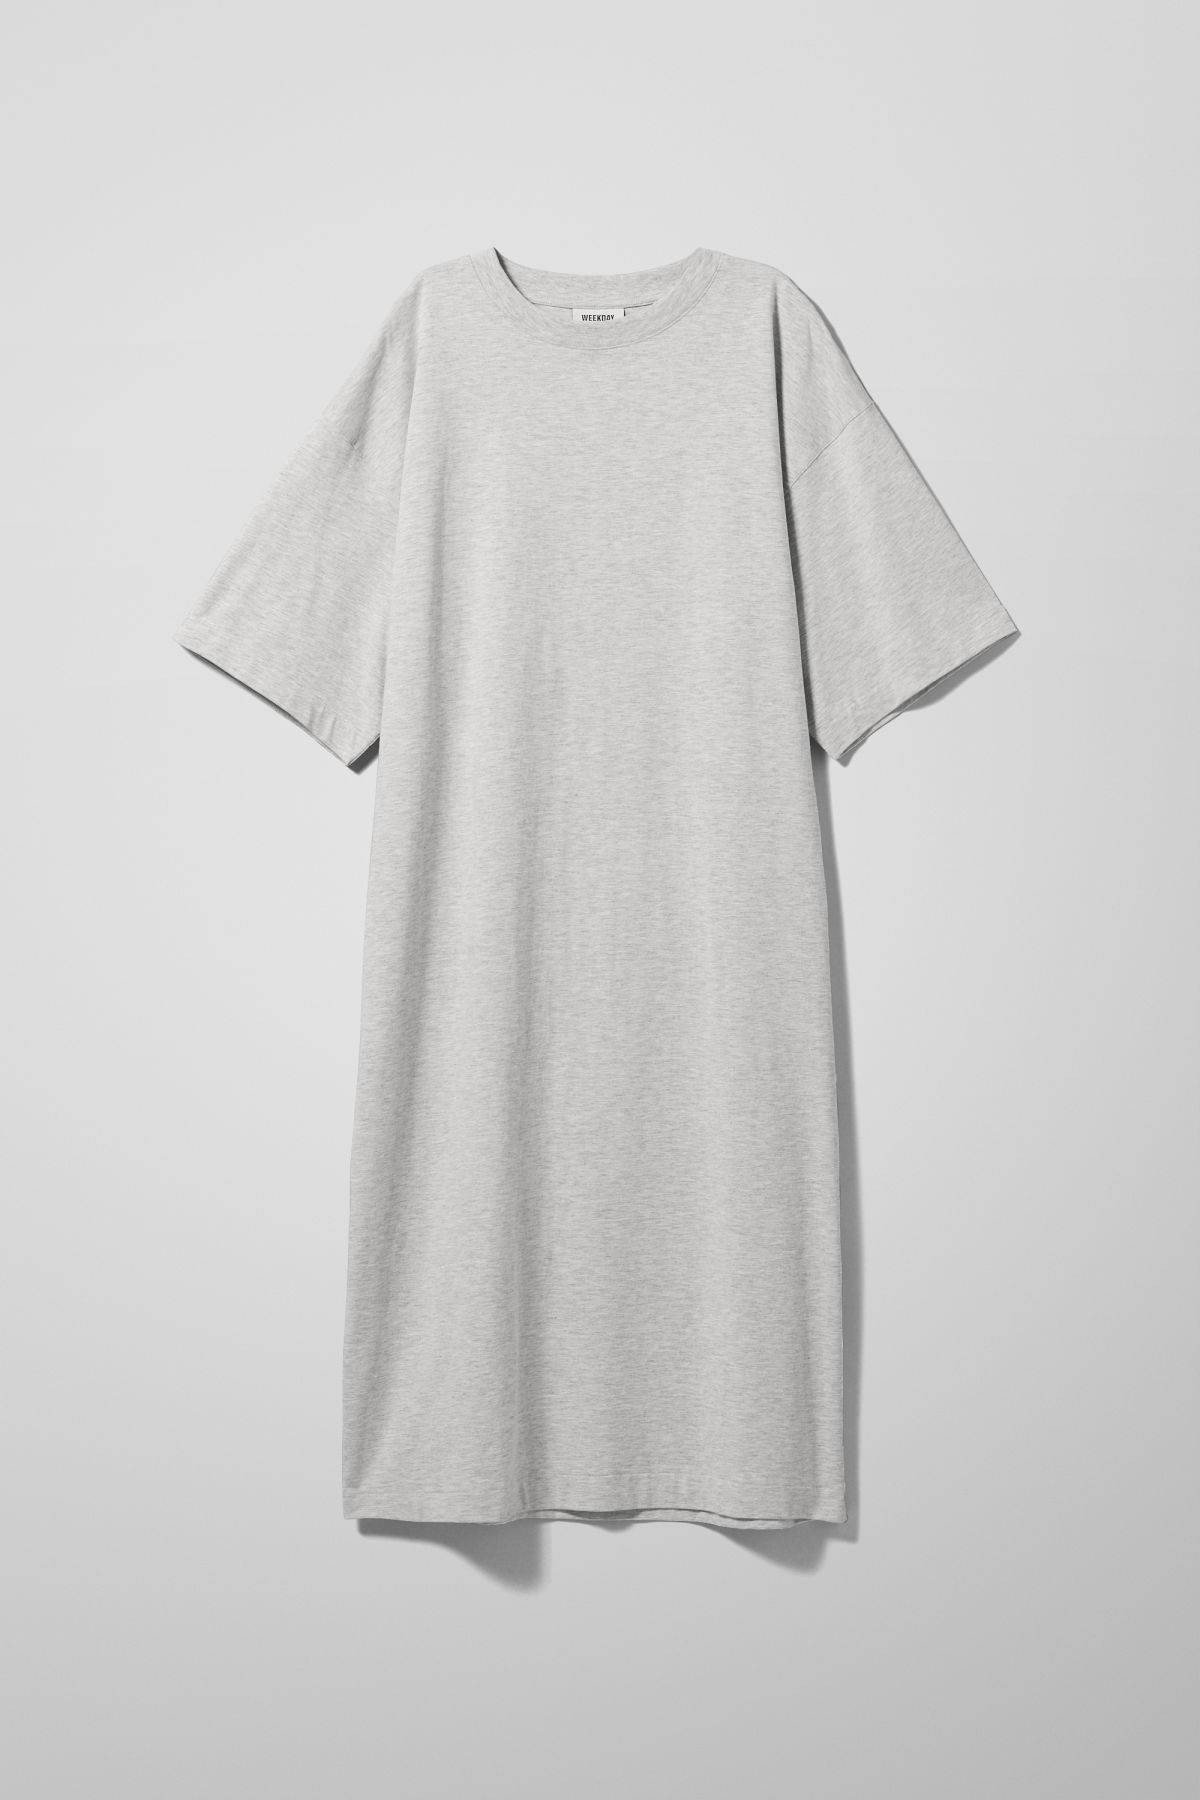 Image of Ines T-Shirt Dress - Grey-XS